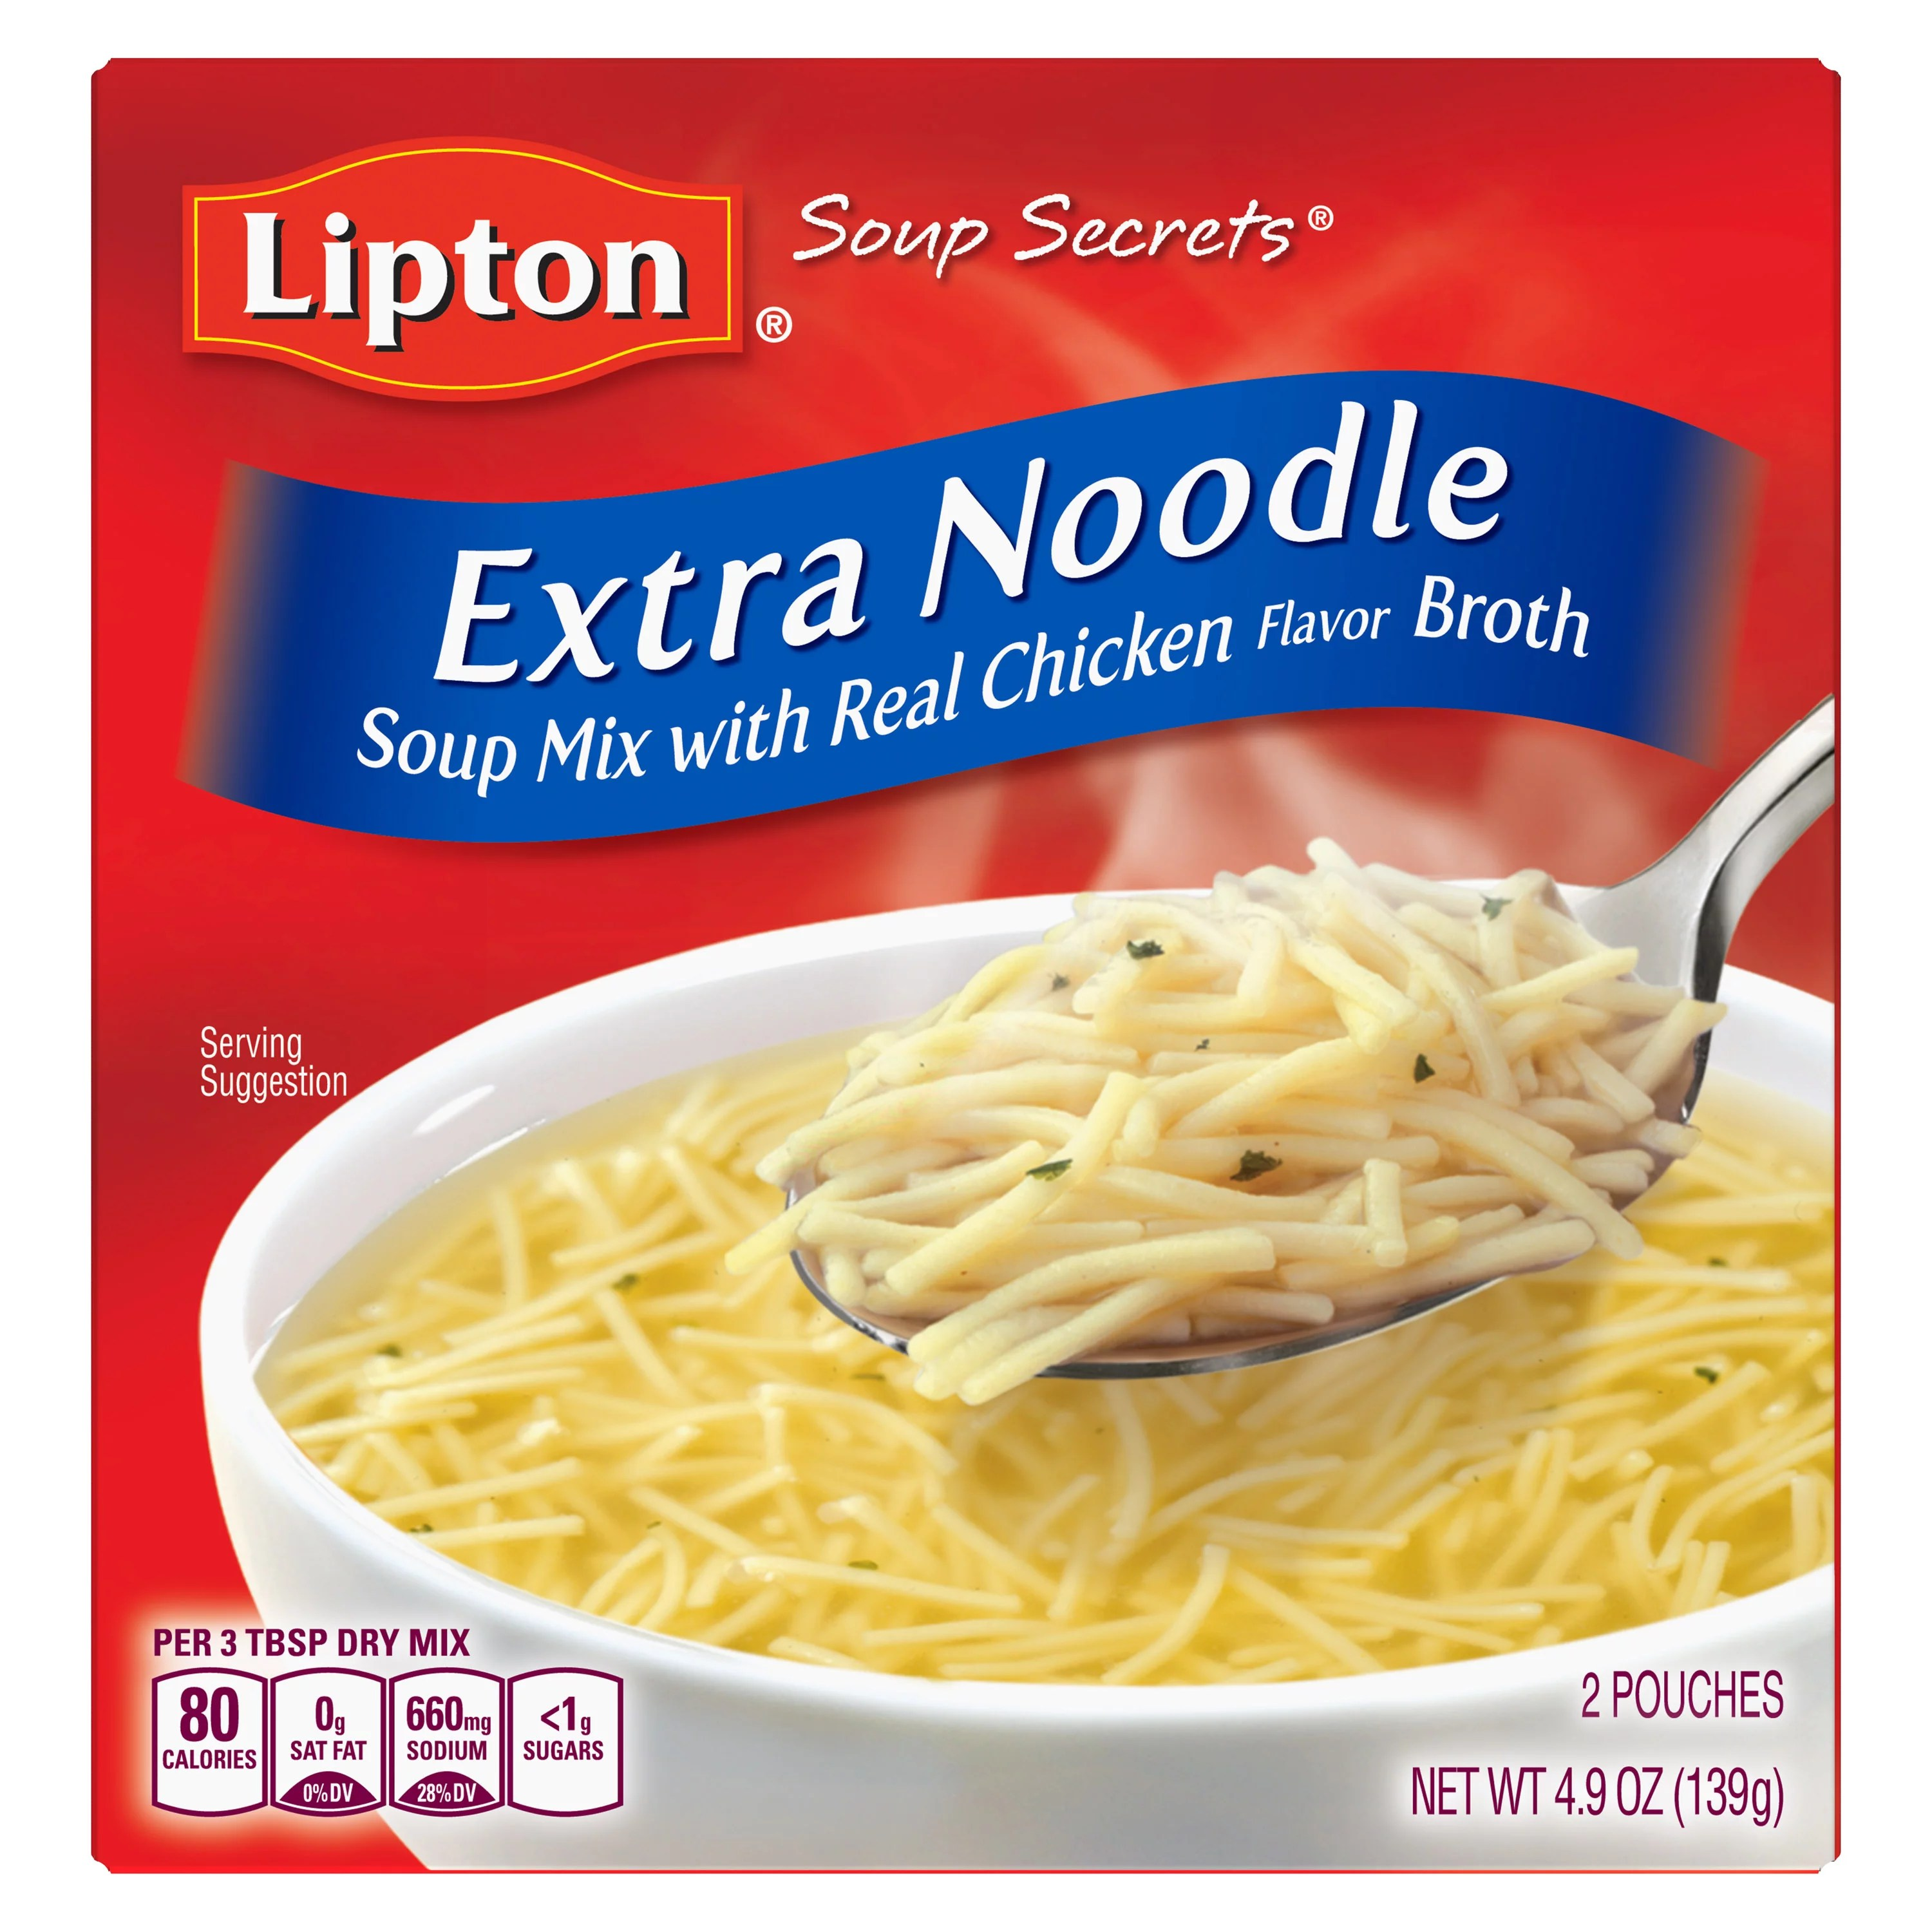 Lipton Soup Secrets with Real Chicken Flavor Extra Noodle ...